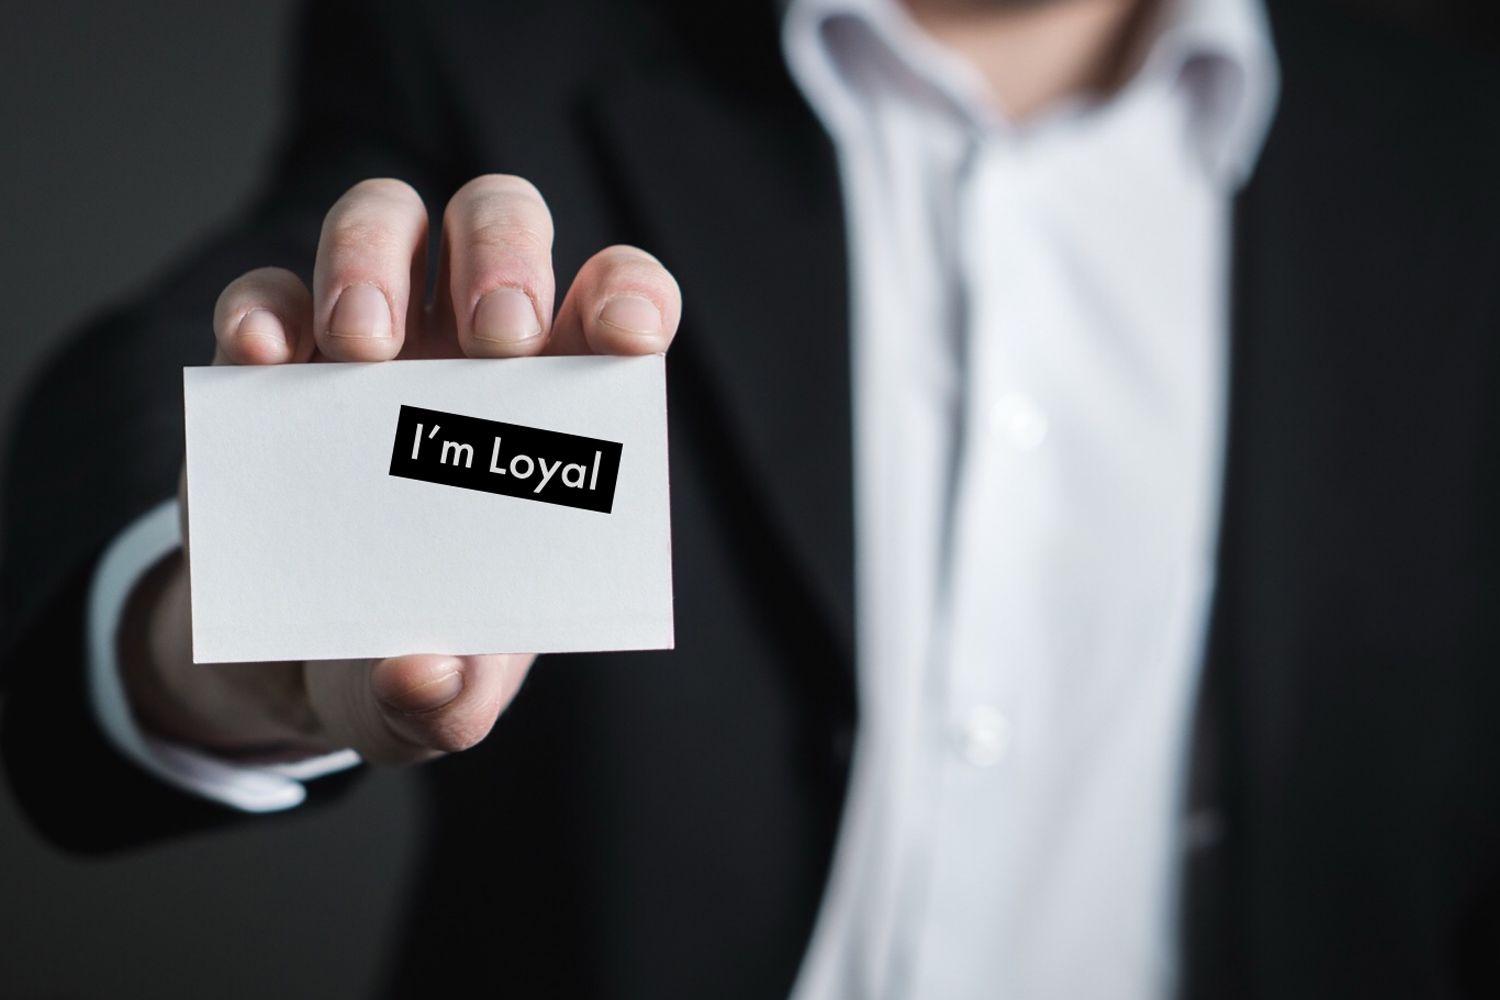 Hotels Love Investing in Loyalty Programs, But are They Just